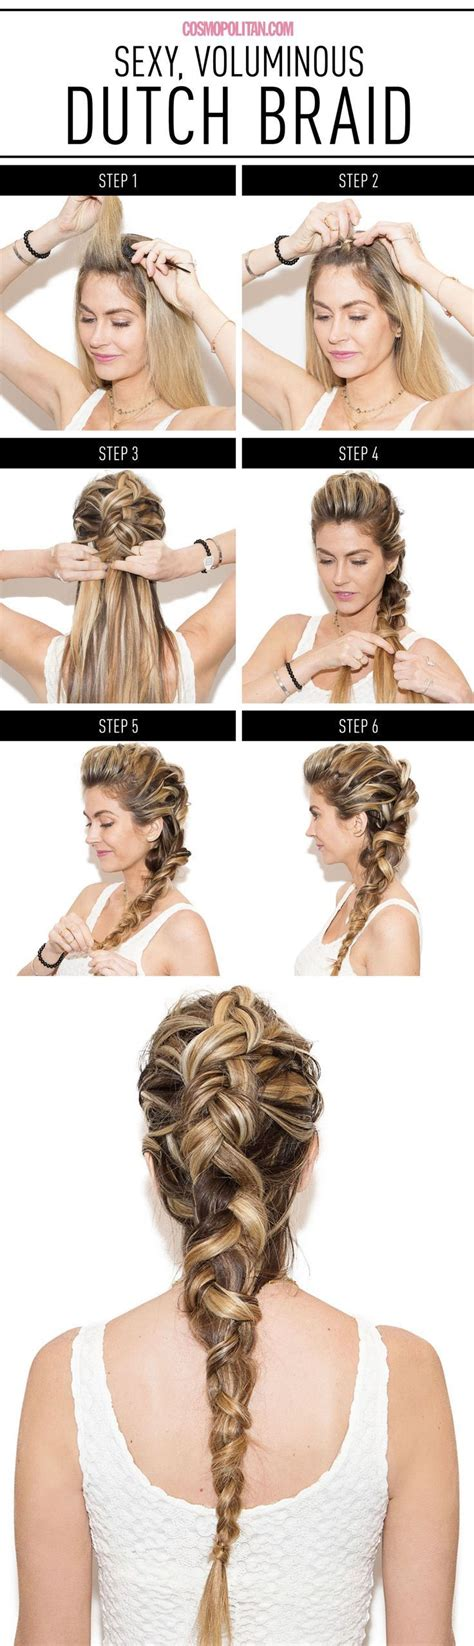 how to do french braids quickly 1000 images about cabellos lisos ondulados y peinados on